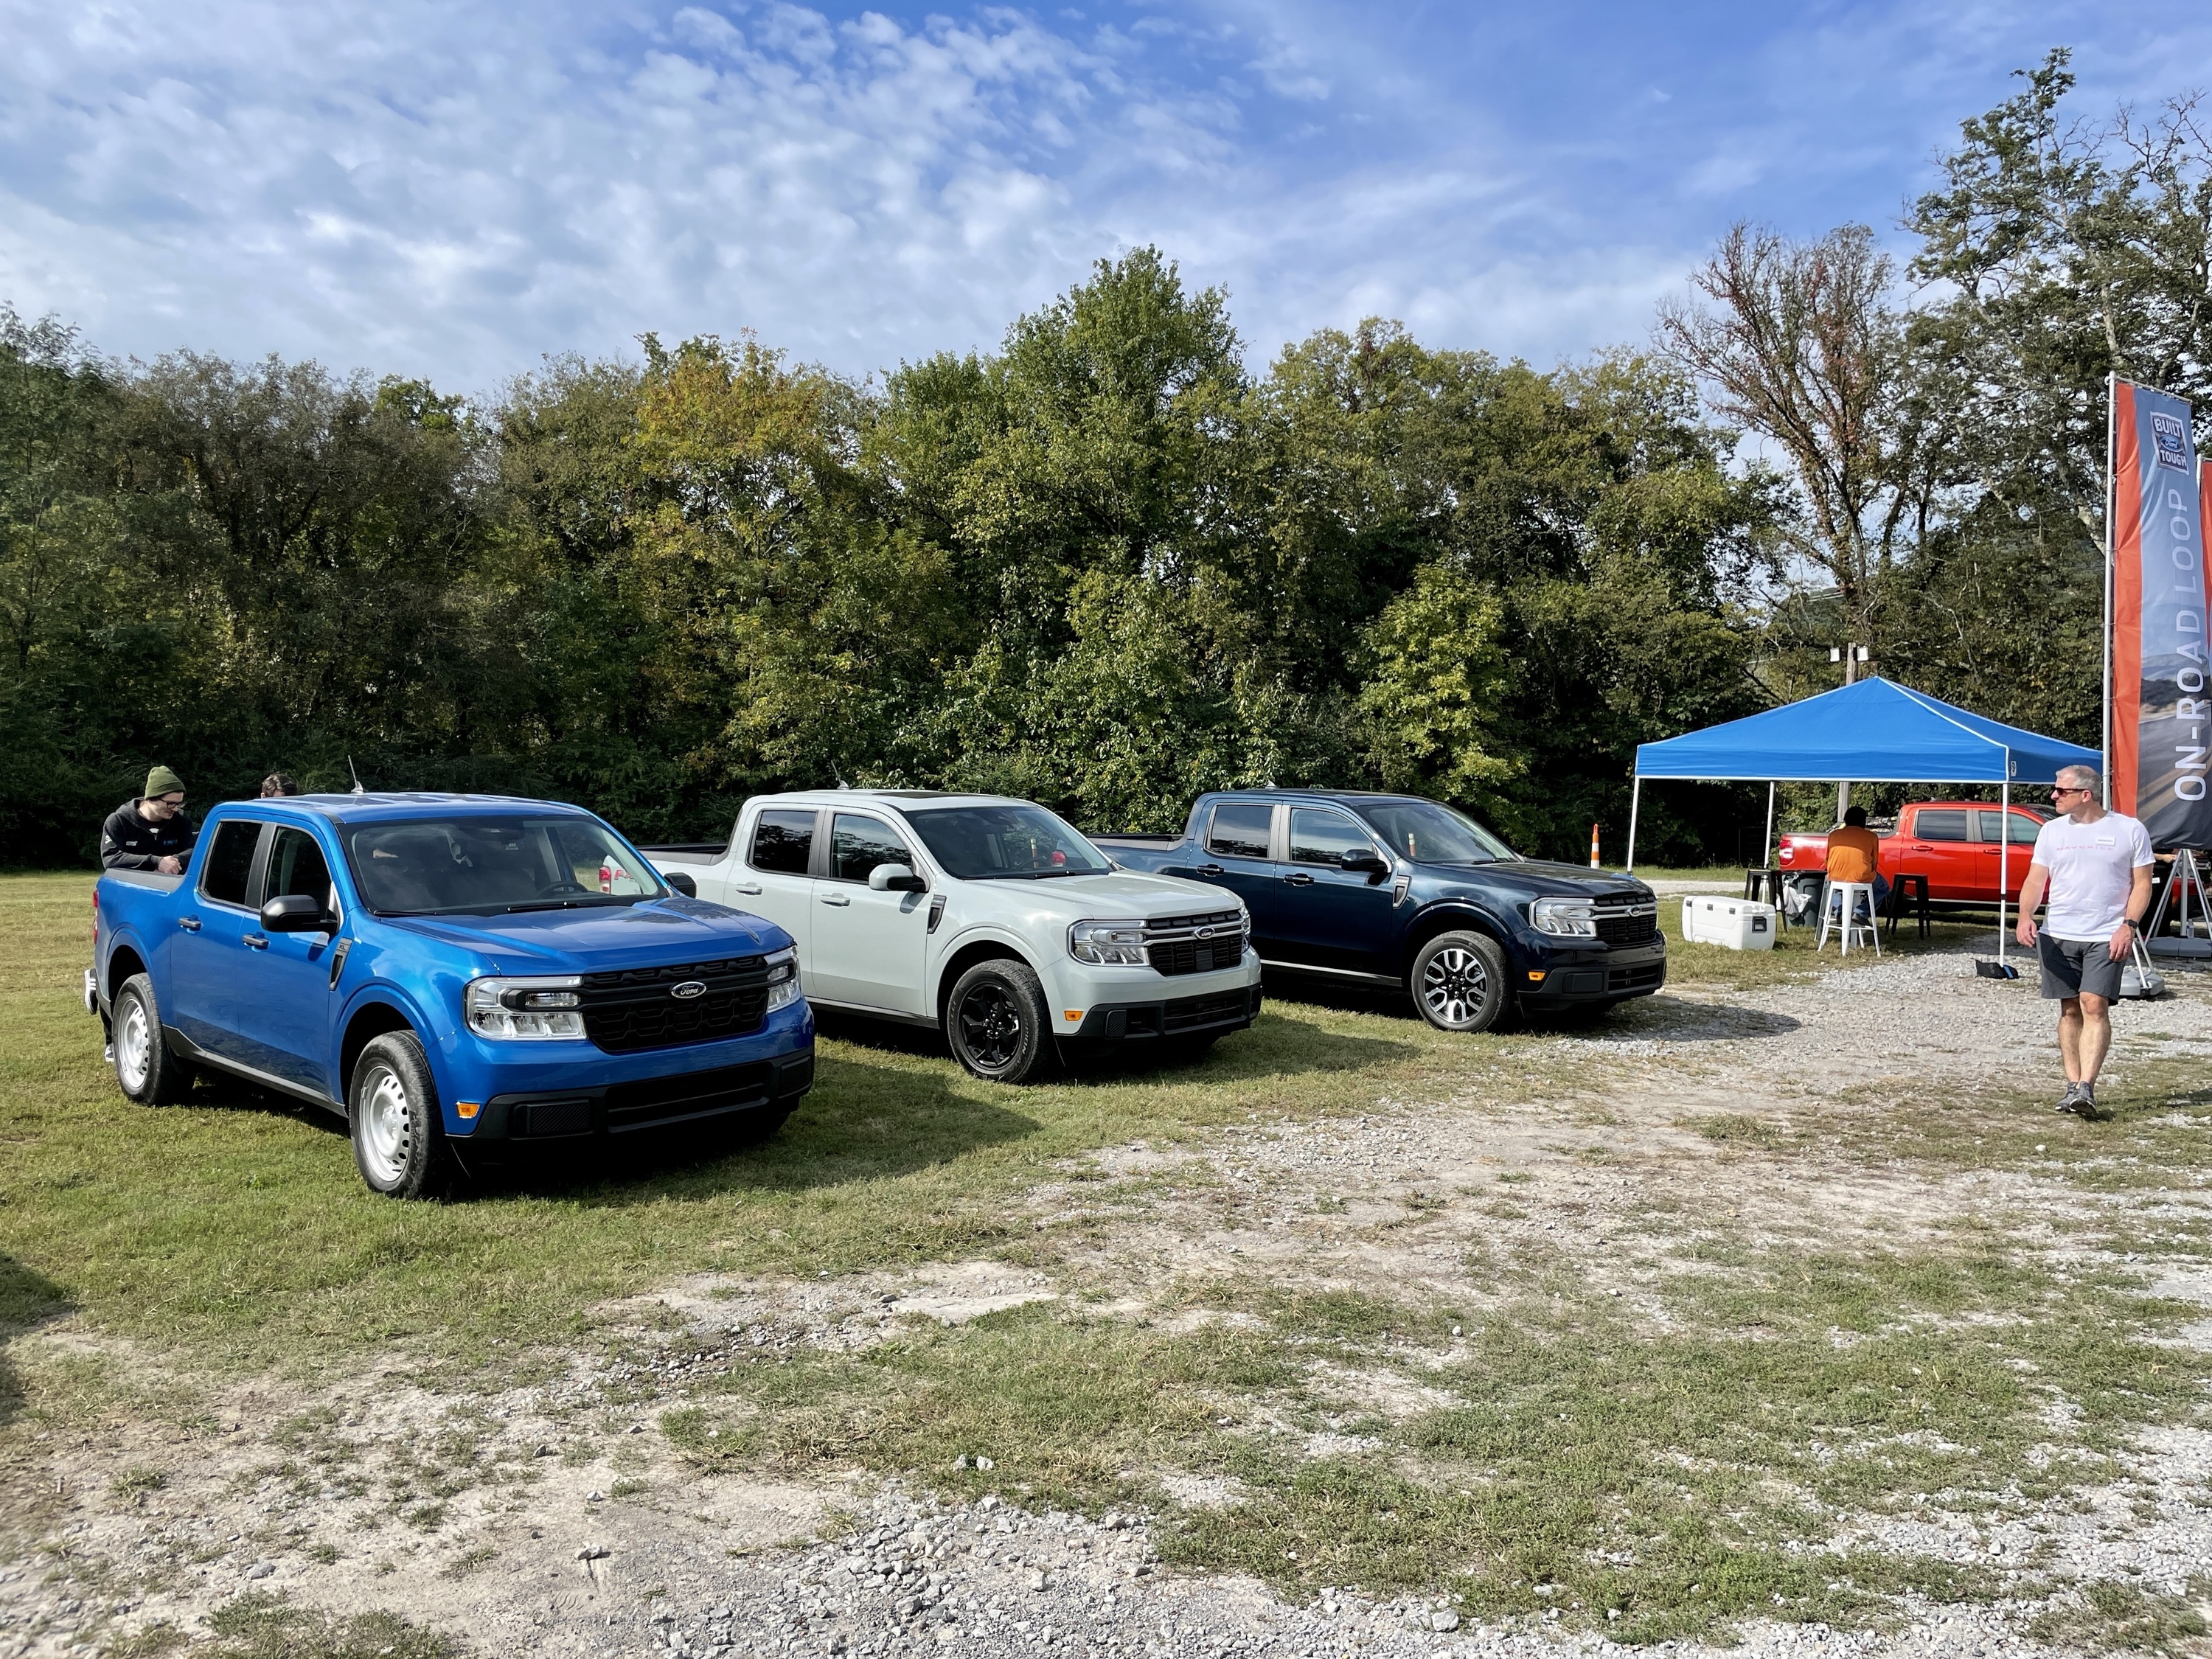 2022 Ford Maverick launch event